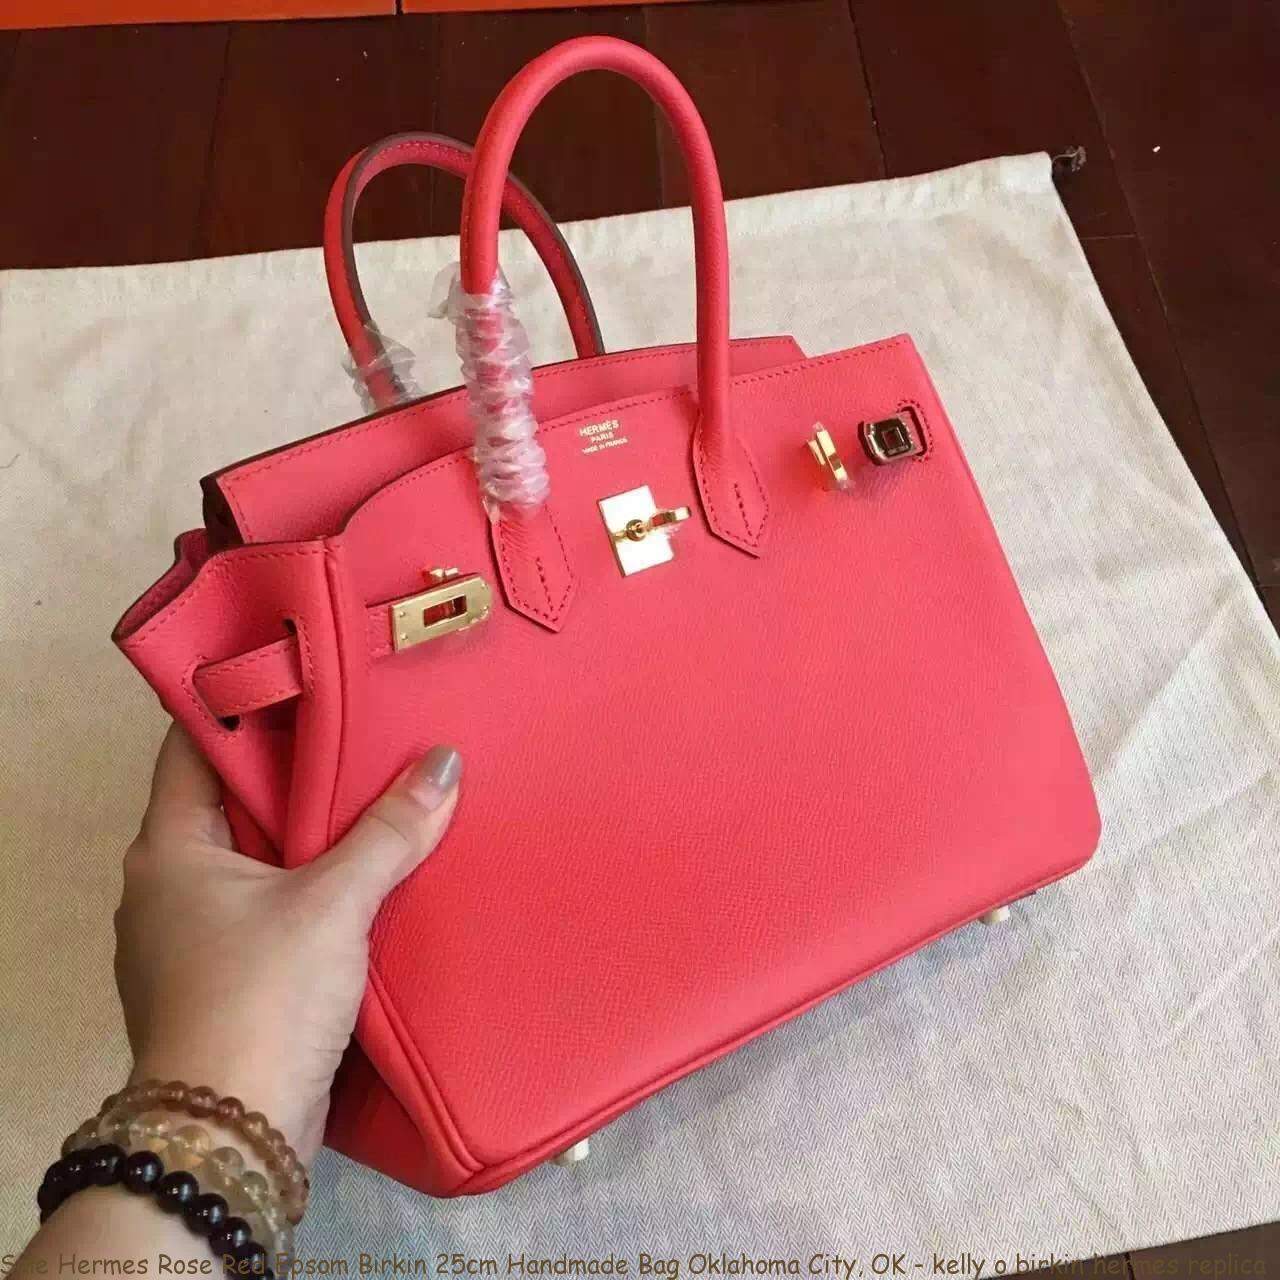 Sale Hermes Rose Red Epsom Birkin 25cm Handmade Bag Oklahoma City ... 278955548bb7